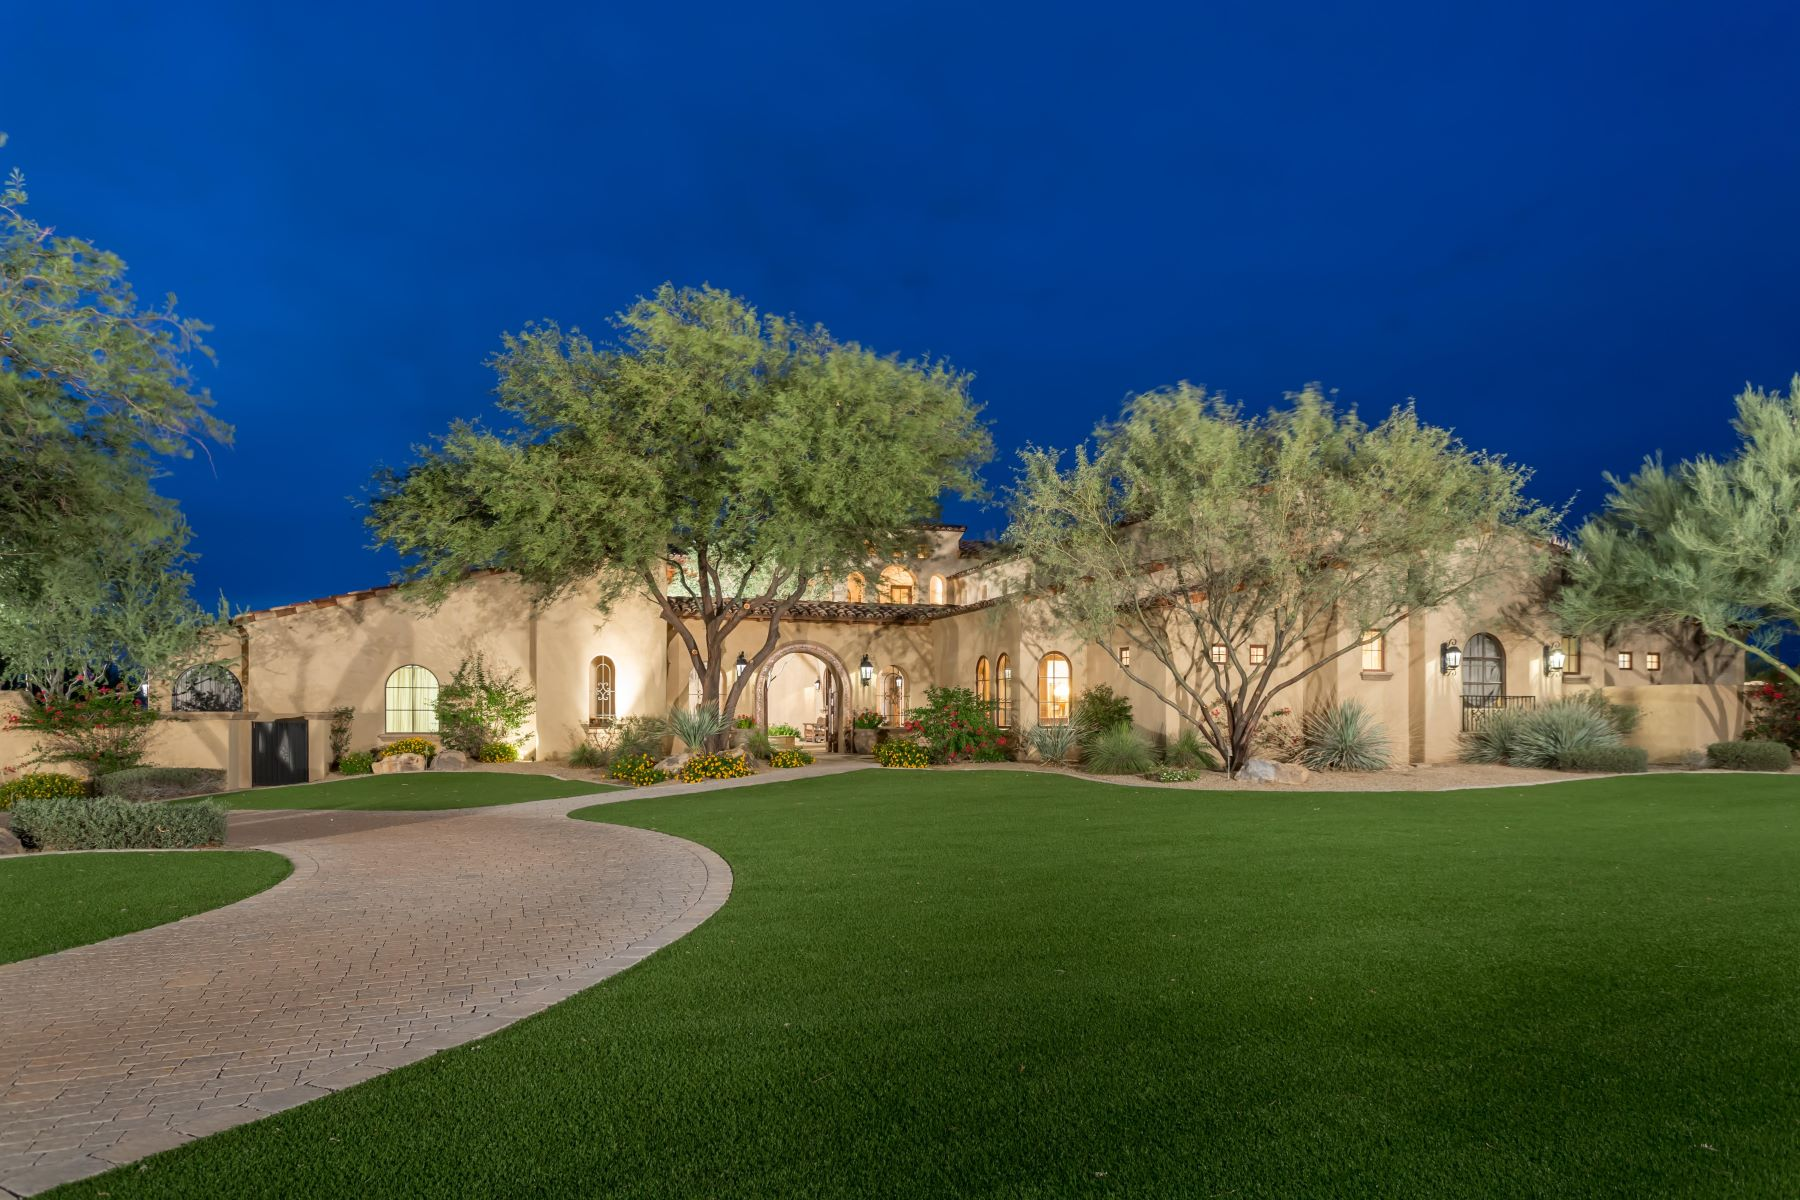 Single Family Home for Sale at Exclusive Estate Living Surrounded by sprawling mountains 24546 N 91st St Scottsdale, Arizona 85255 United States